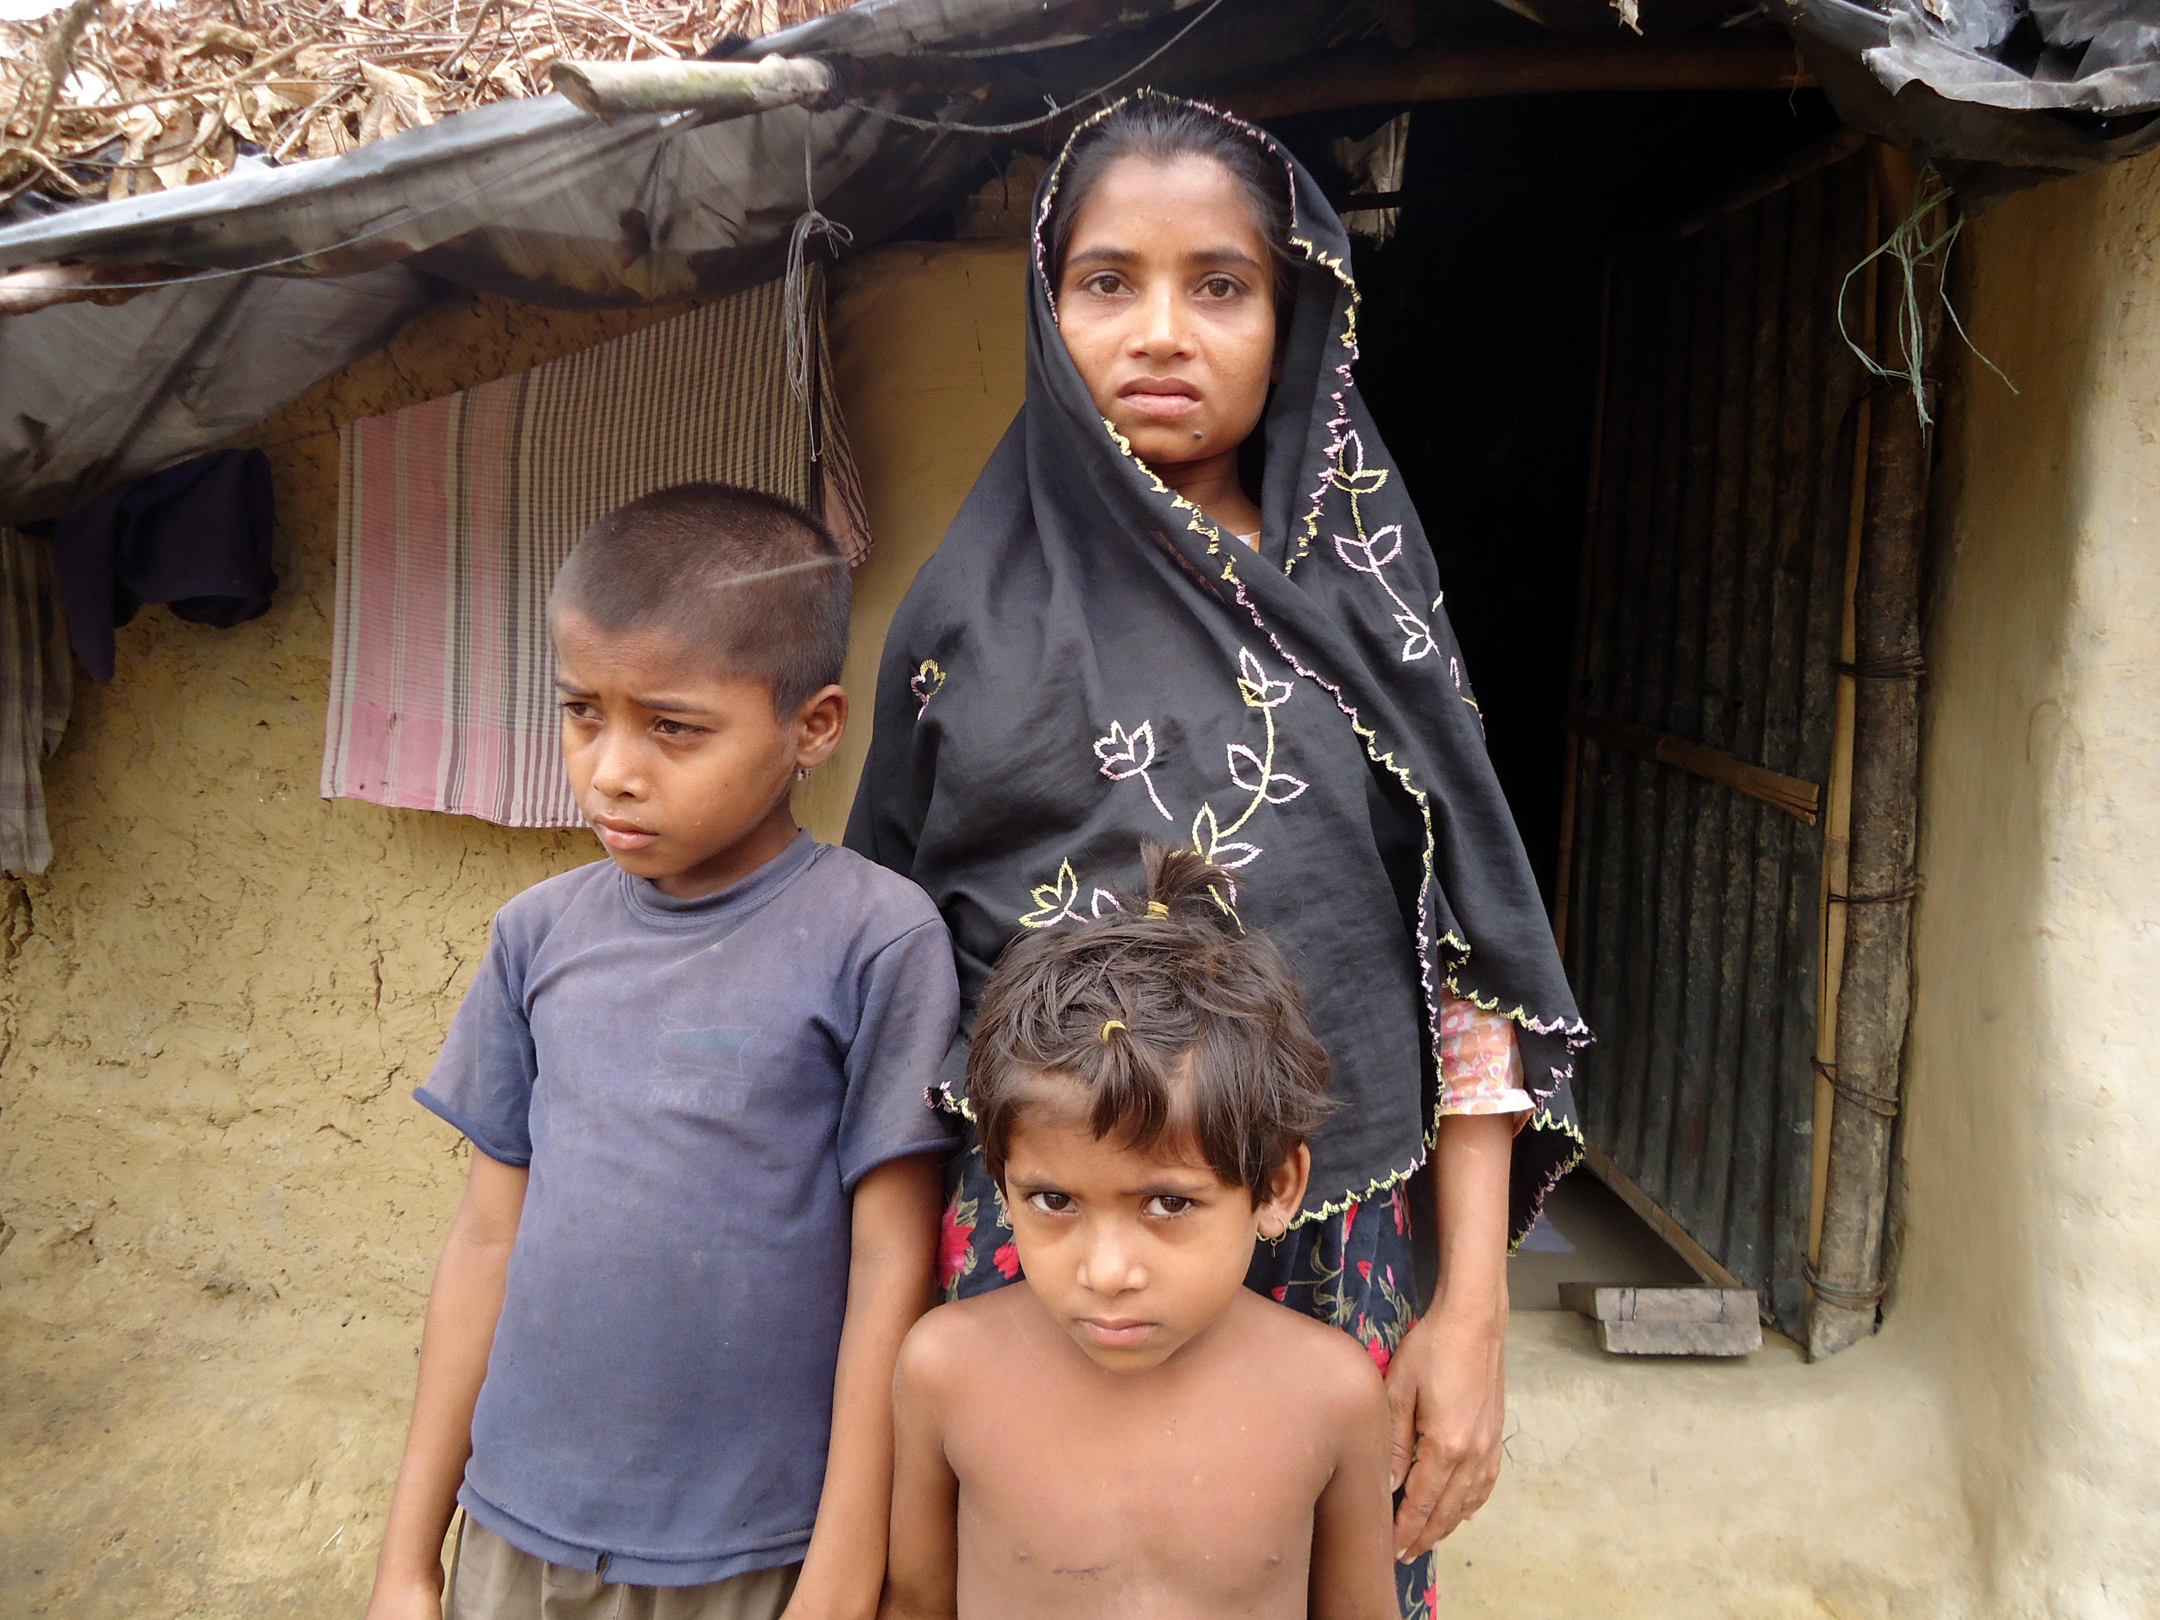 Jaheda Begum, an undocumented Rohingya refugee at the Kutupalong makeshift camp outside Cox's Bazar District, is struggling to feed her family. There are more than 200,000 undocumented Rohingya refugees in southern Bangladesh